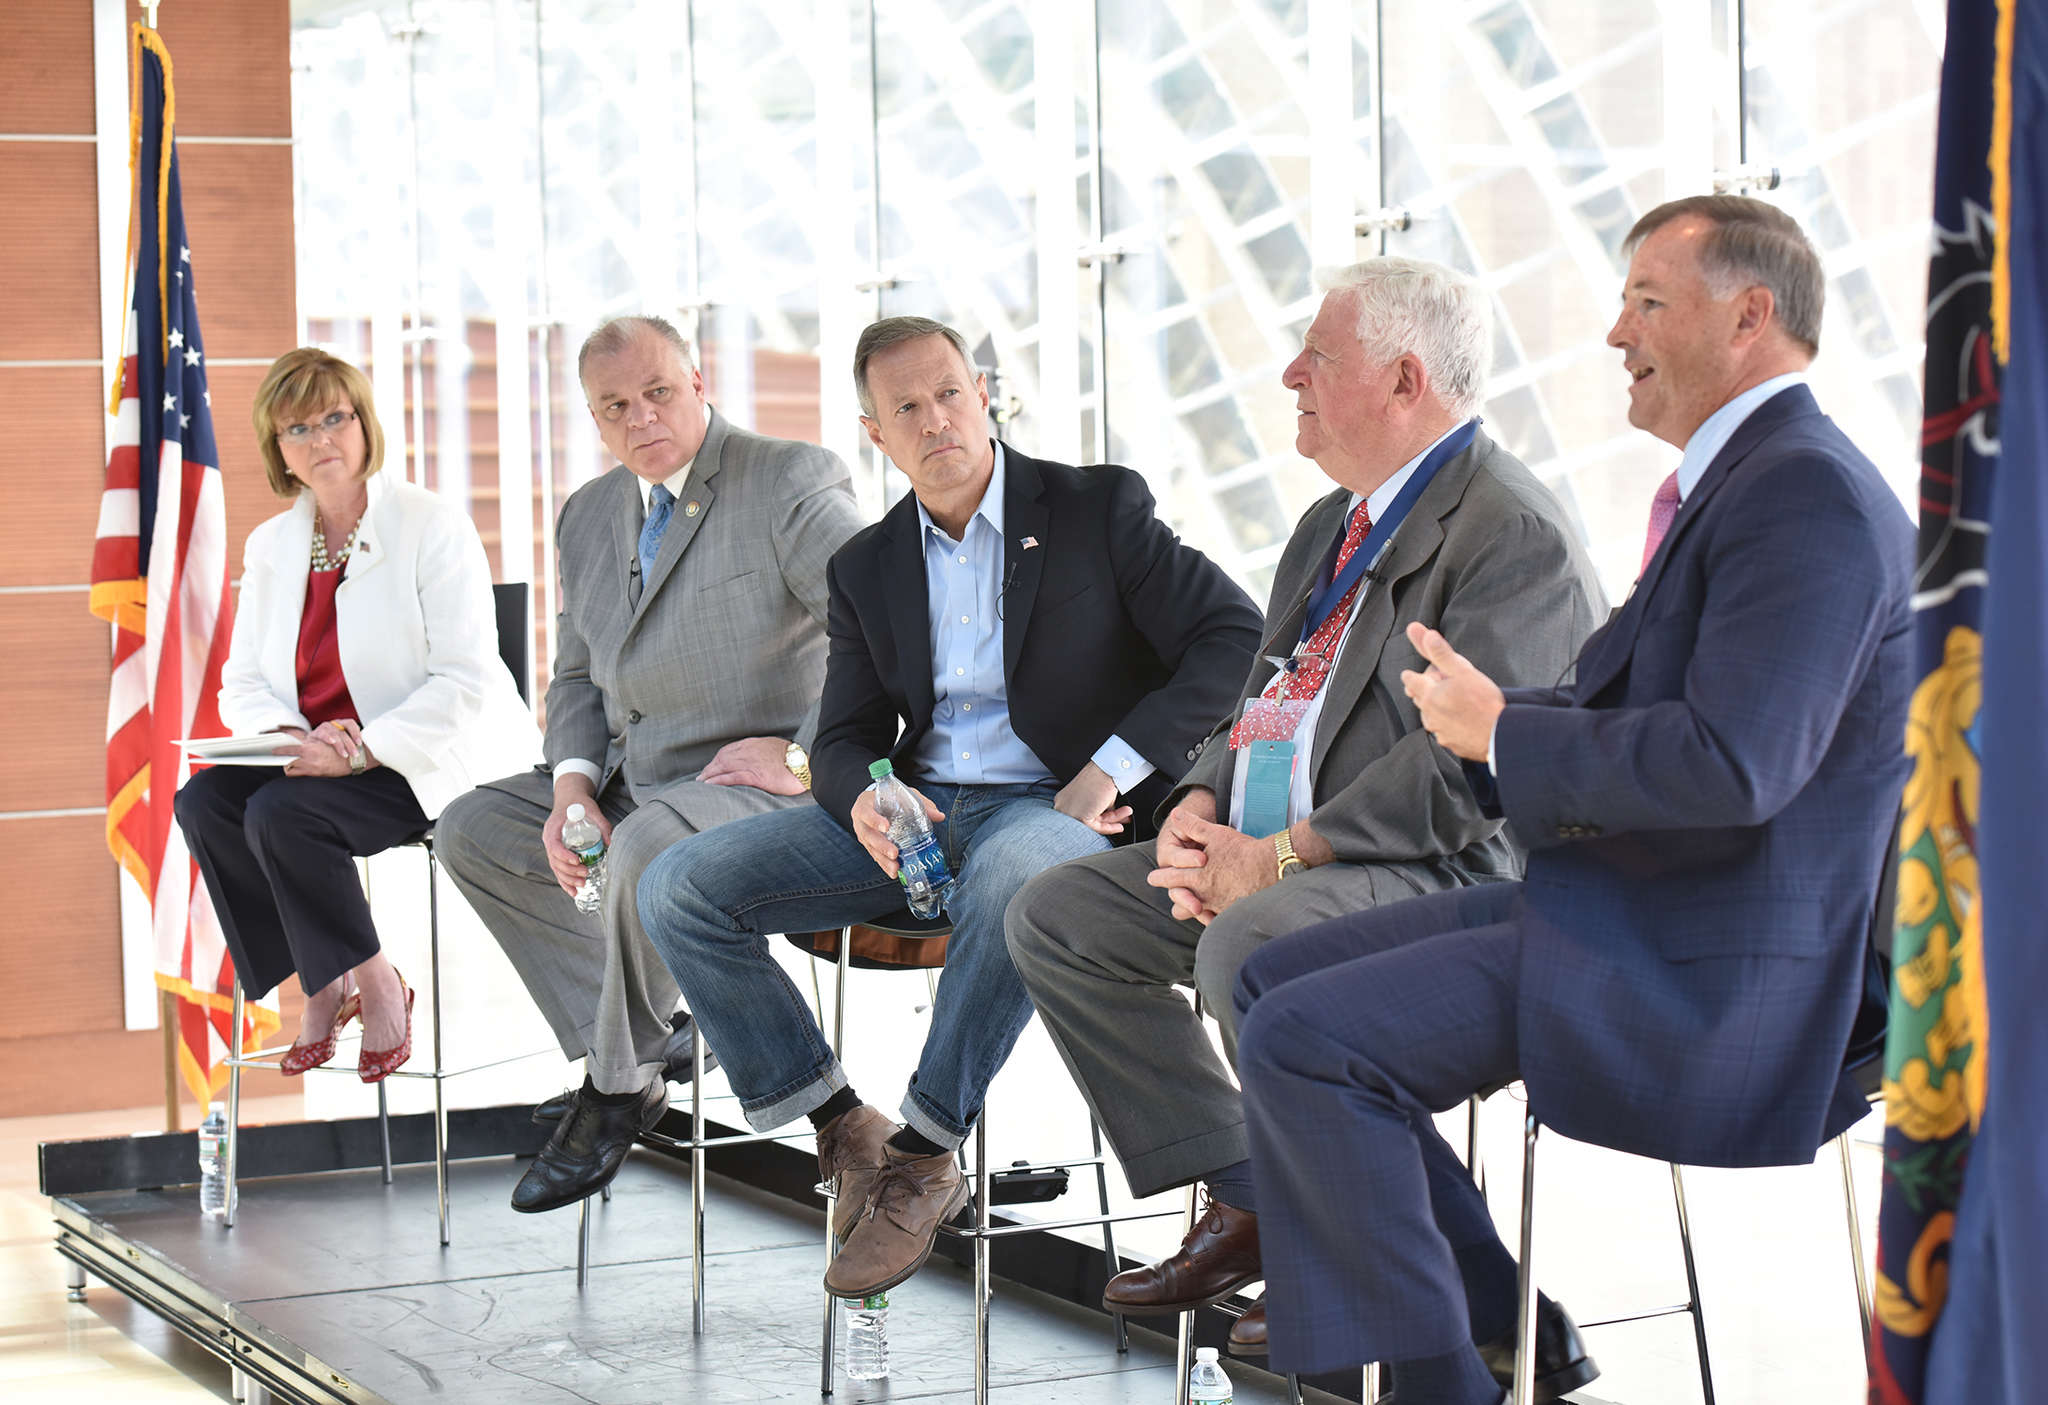 Panelists atop the Kimmel Center were (from left): Eileen McDonnell, CEO of Penn Mutual; New Jersey State Senate President Stephen Sweeney; former Maryland Gov. Martin O´Malley; former New York Lt. Gov. Richard Ravitch; and Penn Mutual Asset Management CEO David O´Malley.